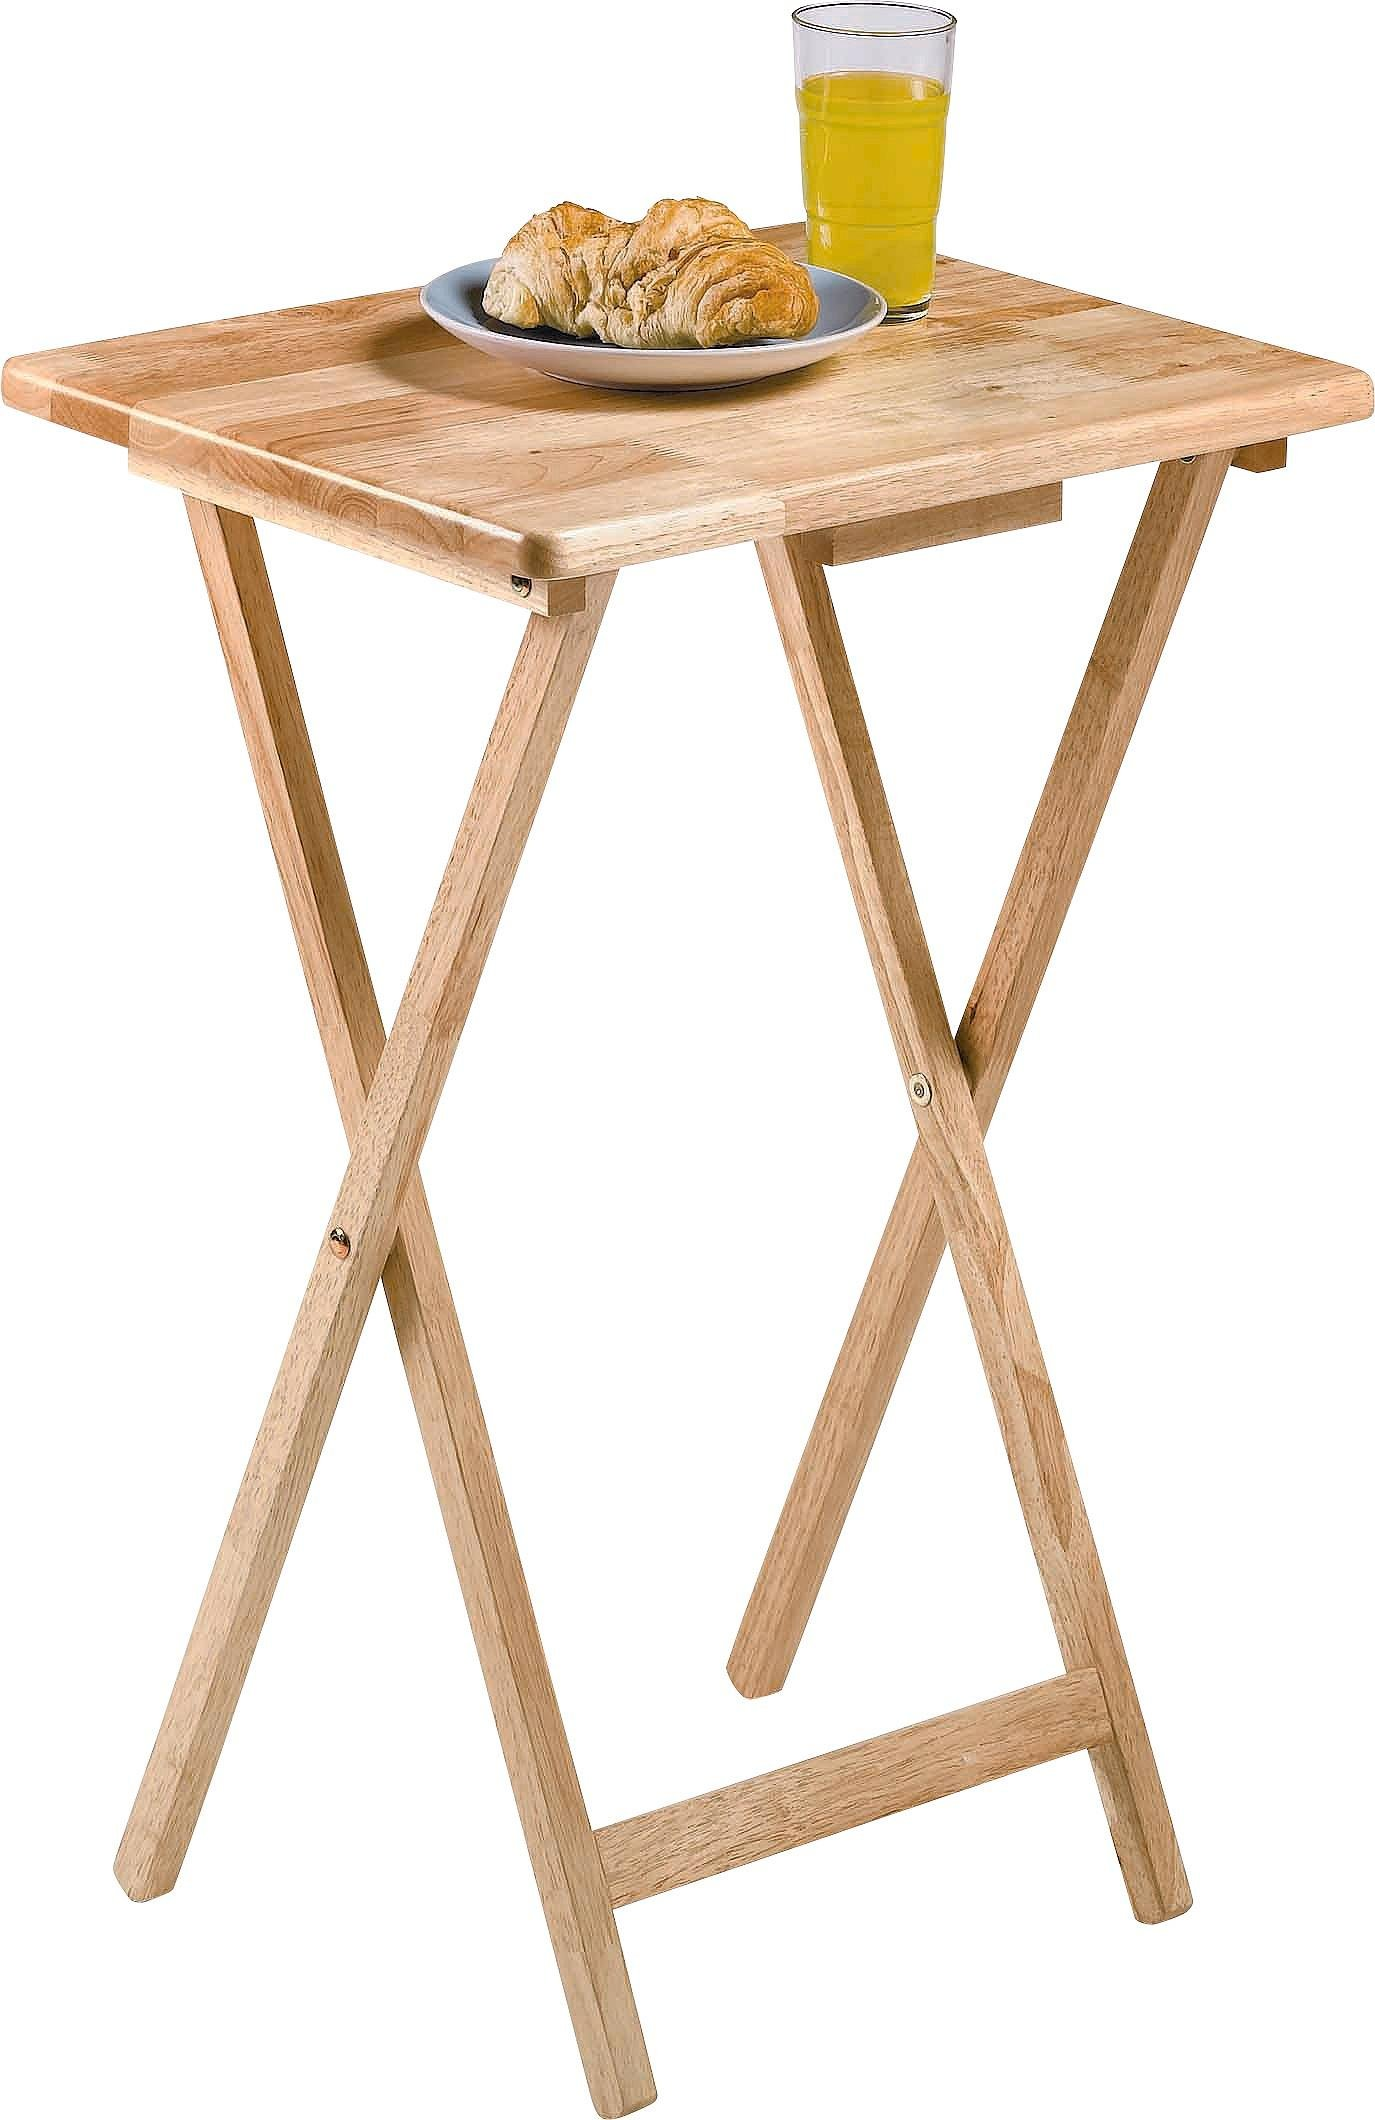 Buy HOME Single Folding Tray Table Natural Coffee tables side